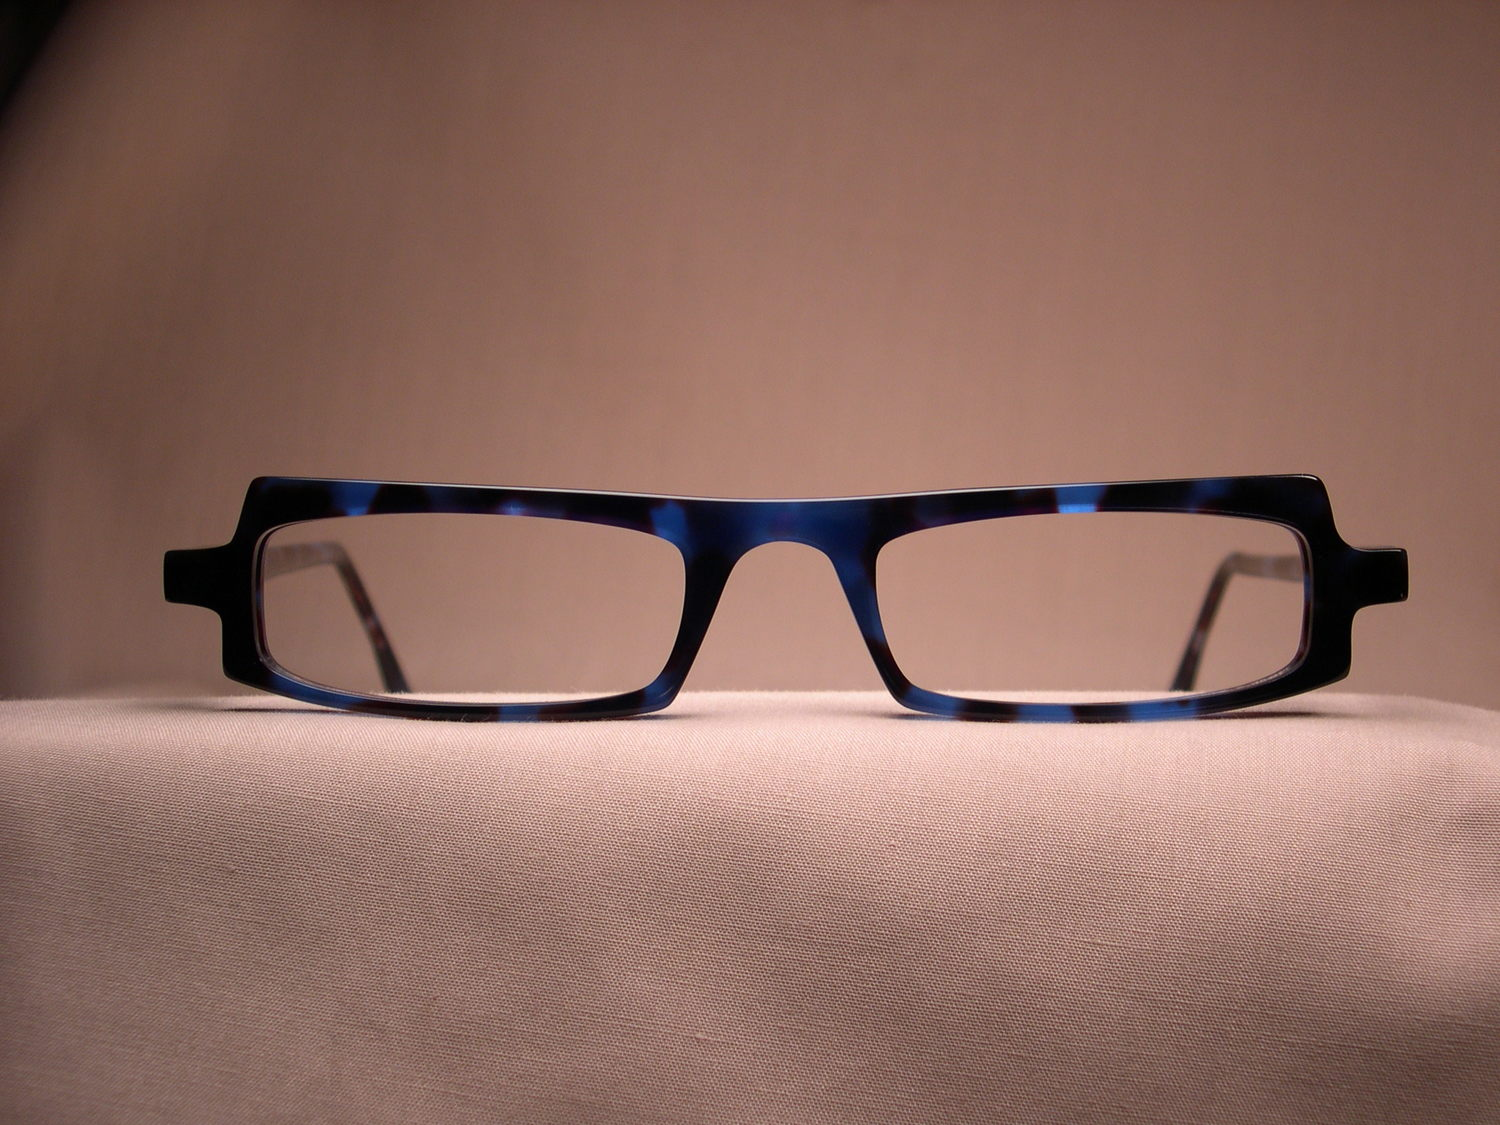 Indivijual-Custom-Glasses-30.jpg